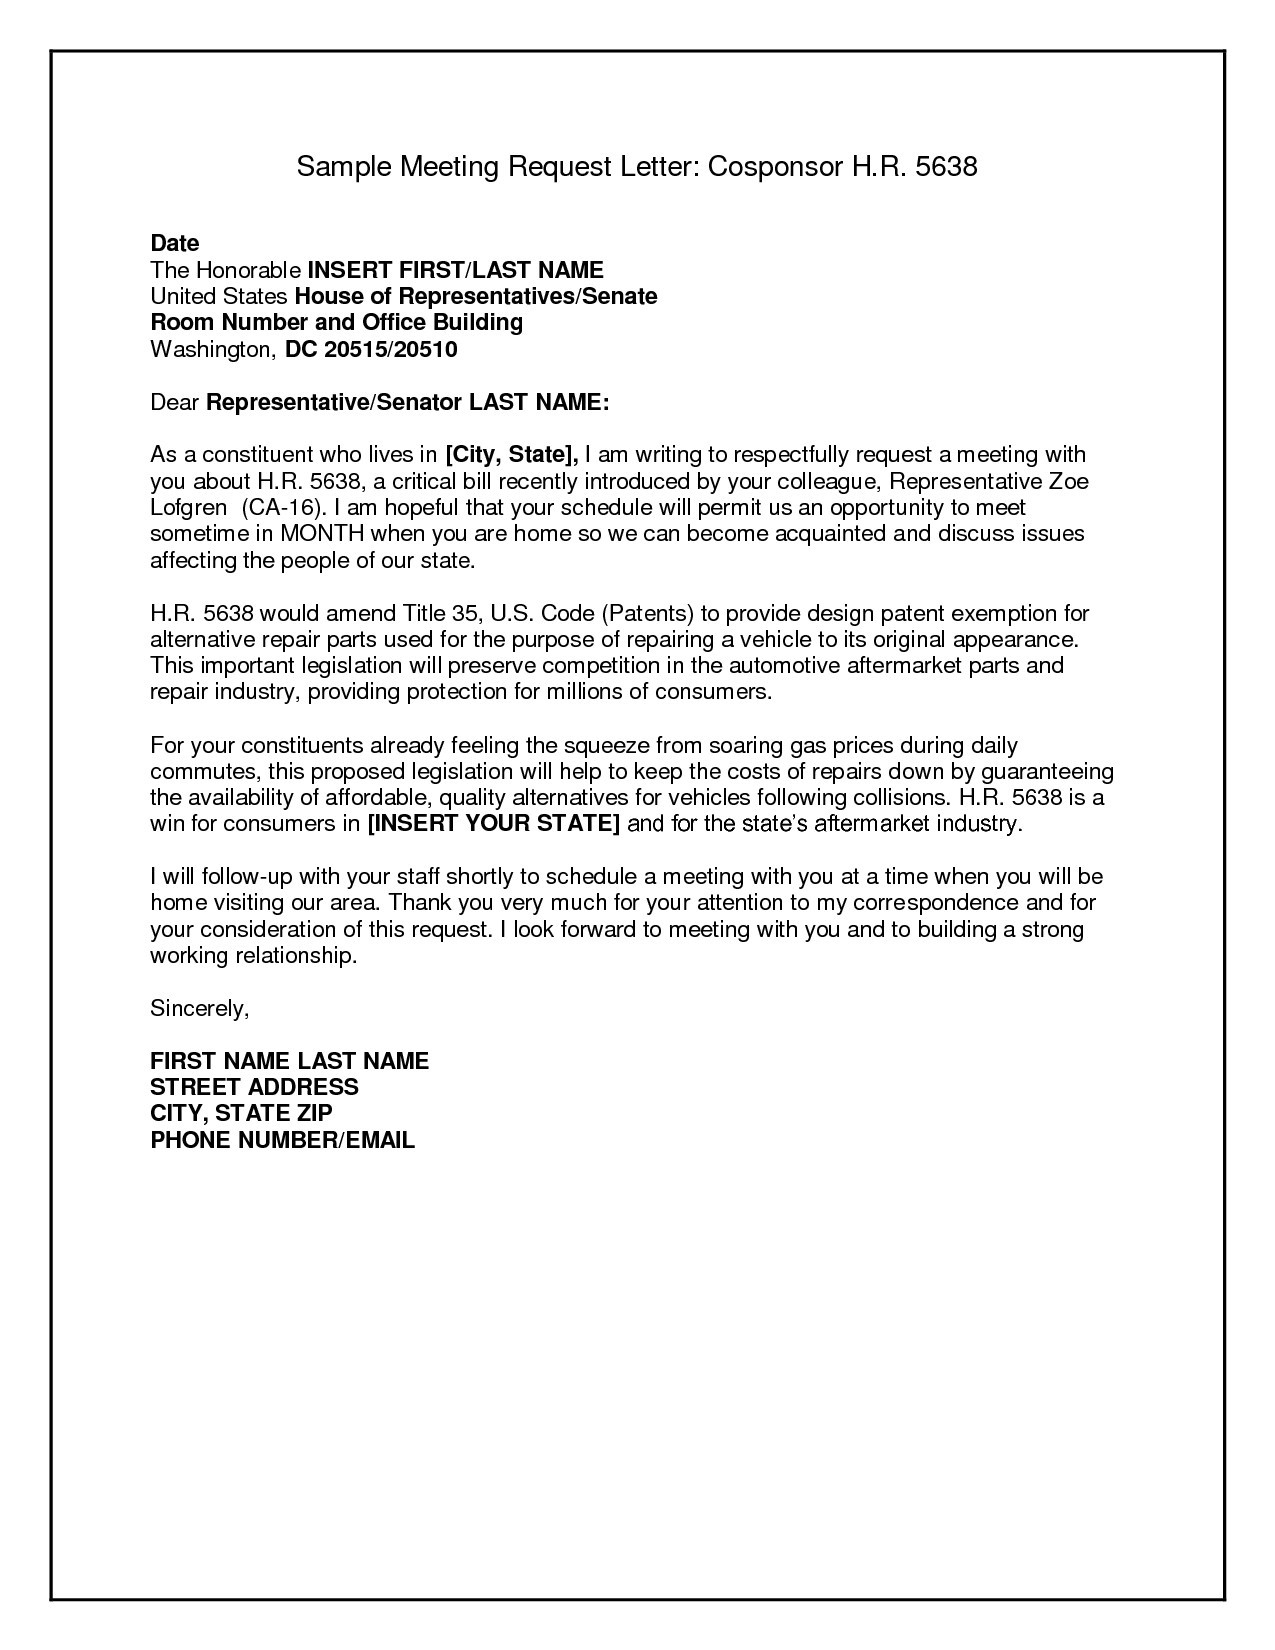 Business Proposal Template Letter - Business Proposal Templates Refrence Business Sale Agreement New